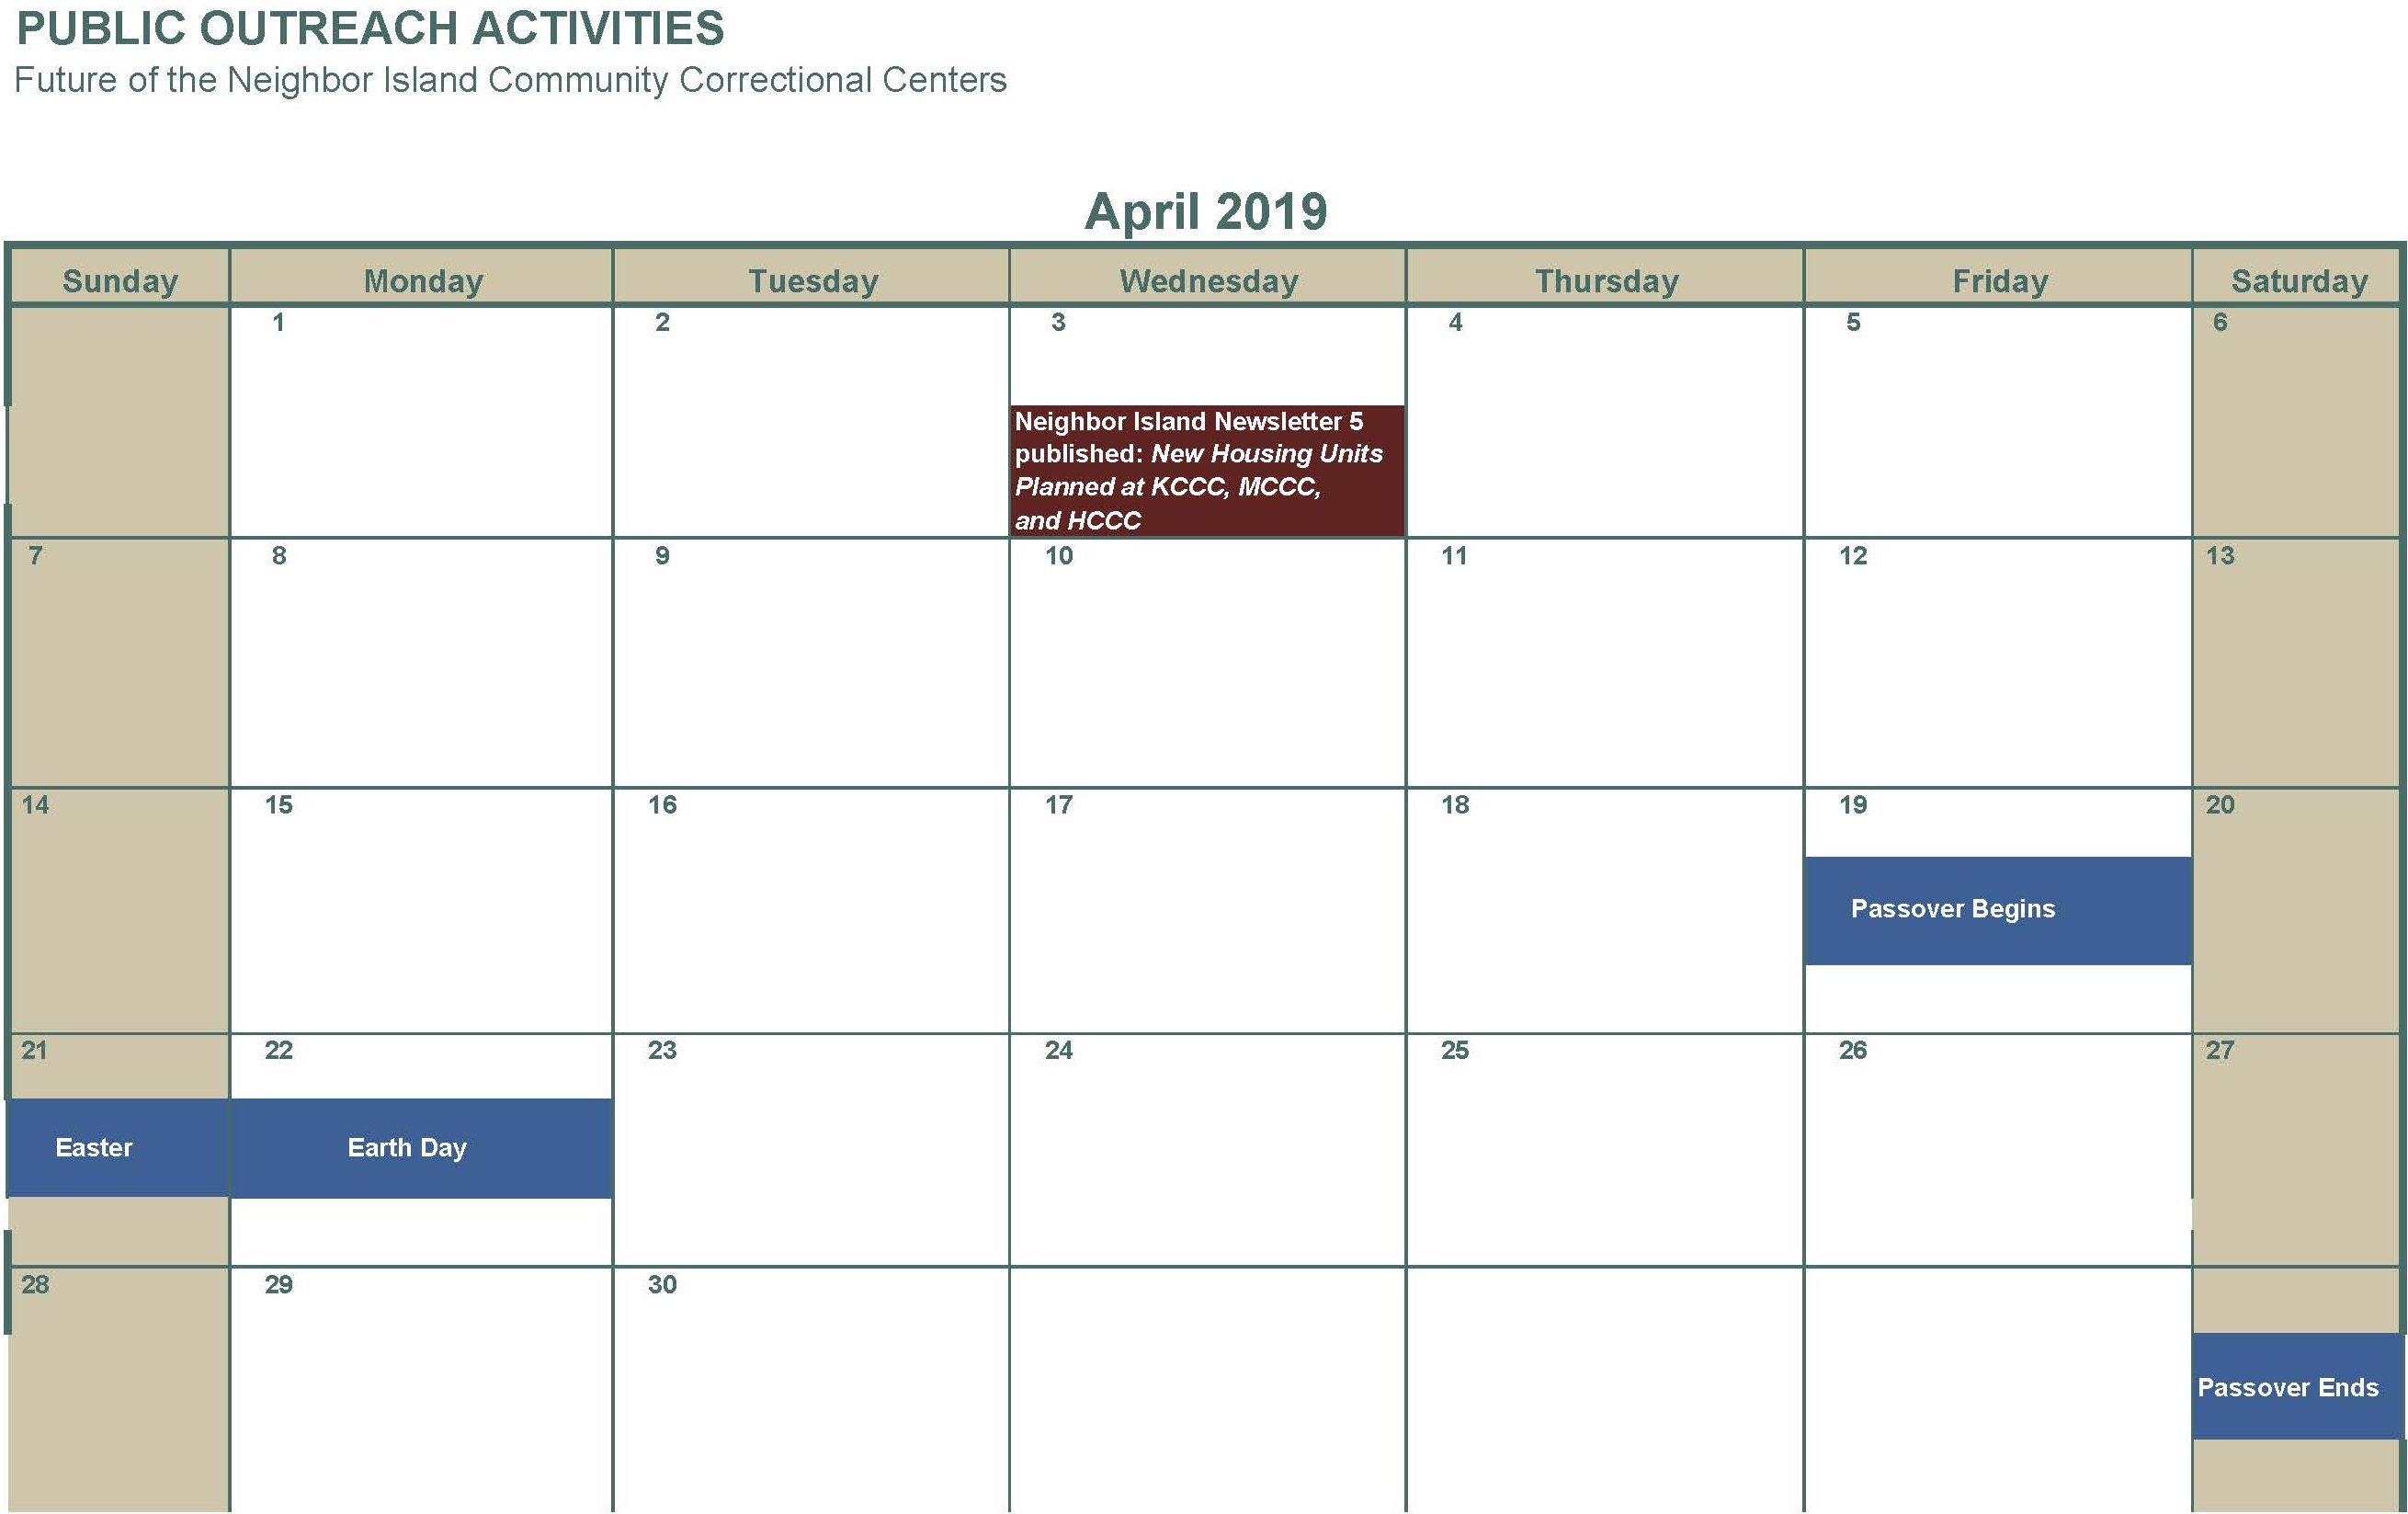 April 2019 no activities